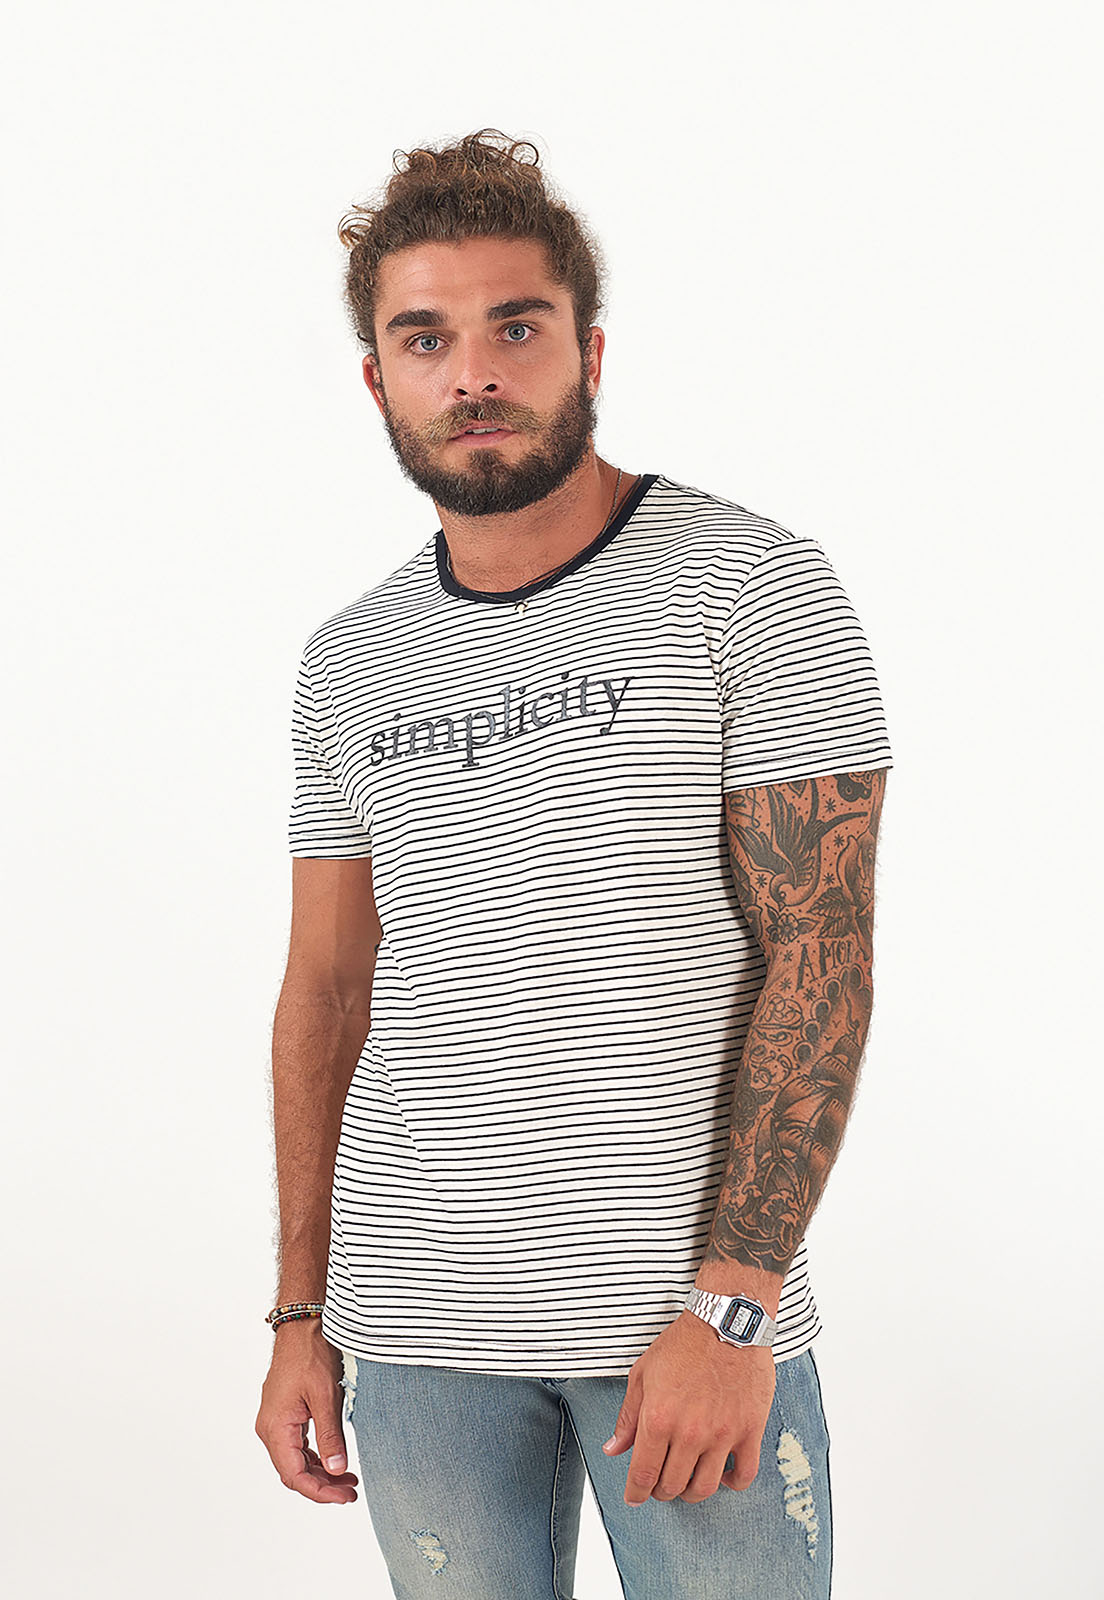 T-Shirt Simplicity melty  - melty surf & Co.